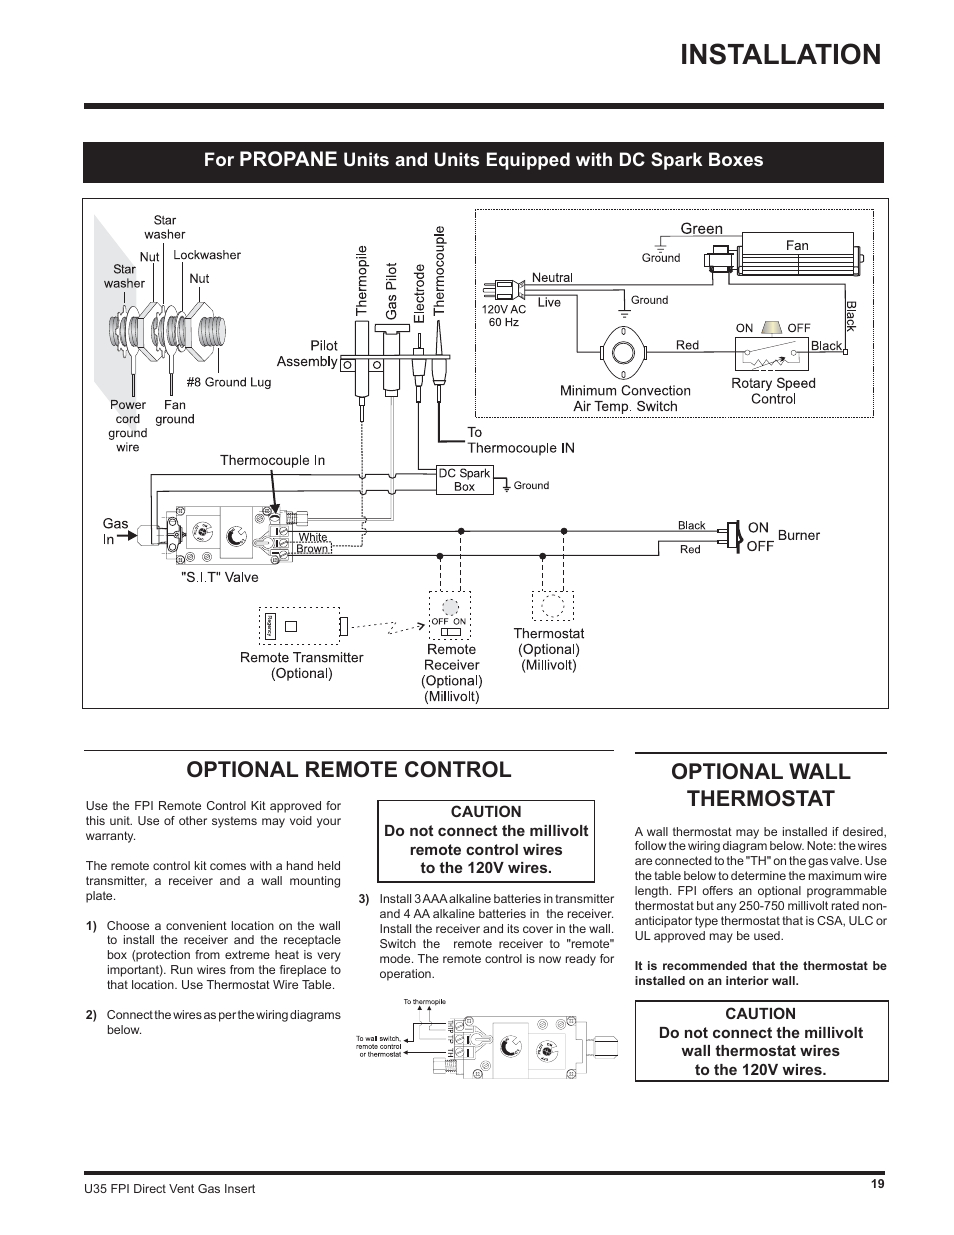 Installation Optional Remote Control Wall Thermostat Wiring The Switches That Select Fan Speed See Diagram Below Propane Regency Gas Insert U35 Ng1 User Manual Page 19 32